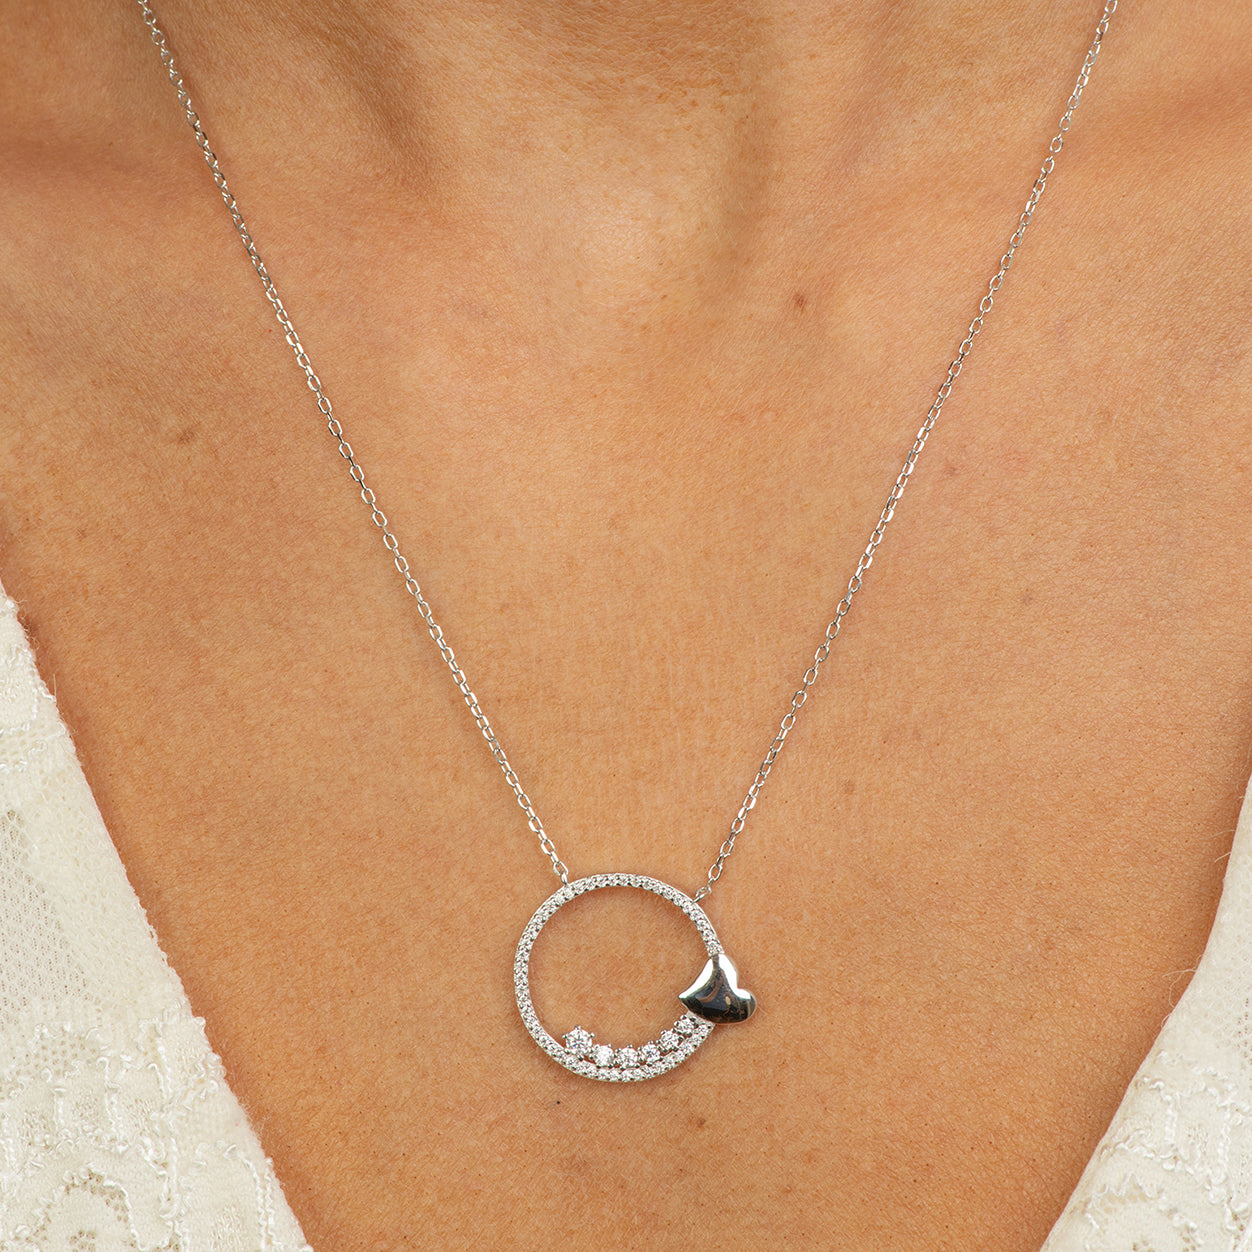 DANA - Circle of life necklace with heart